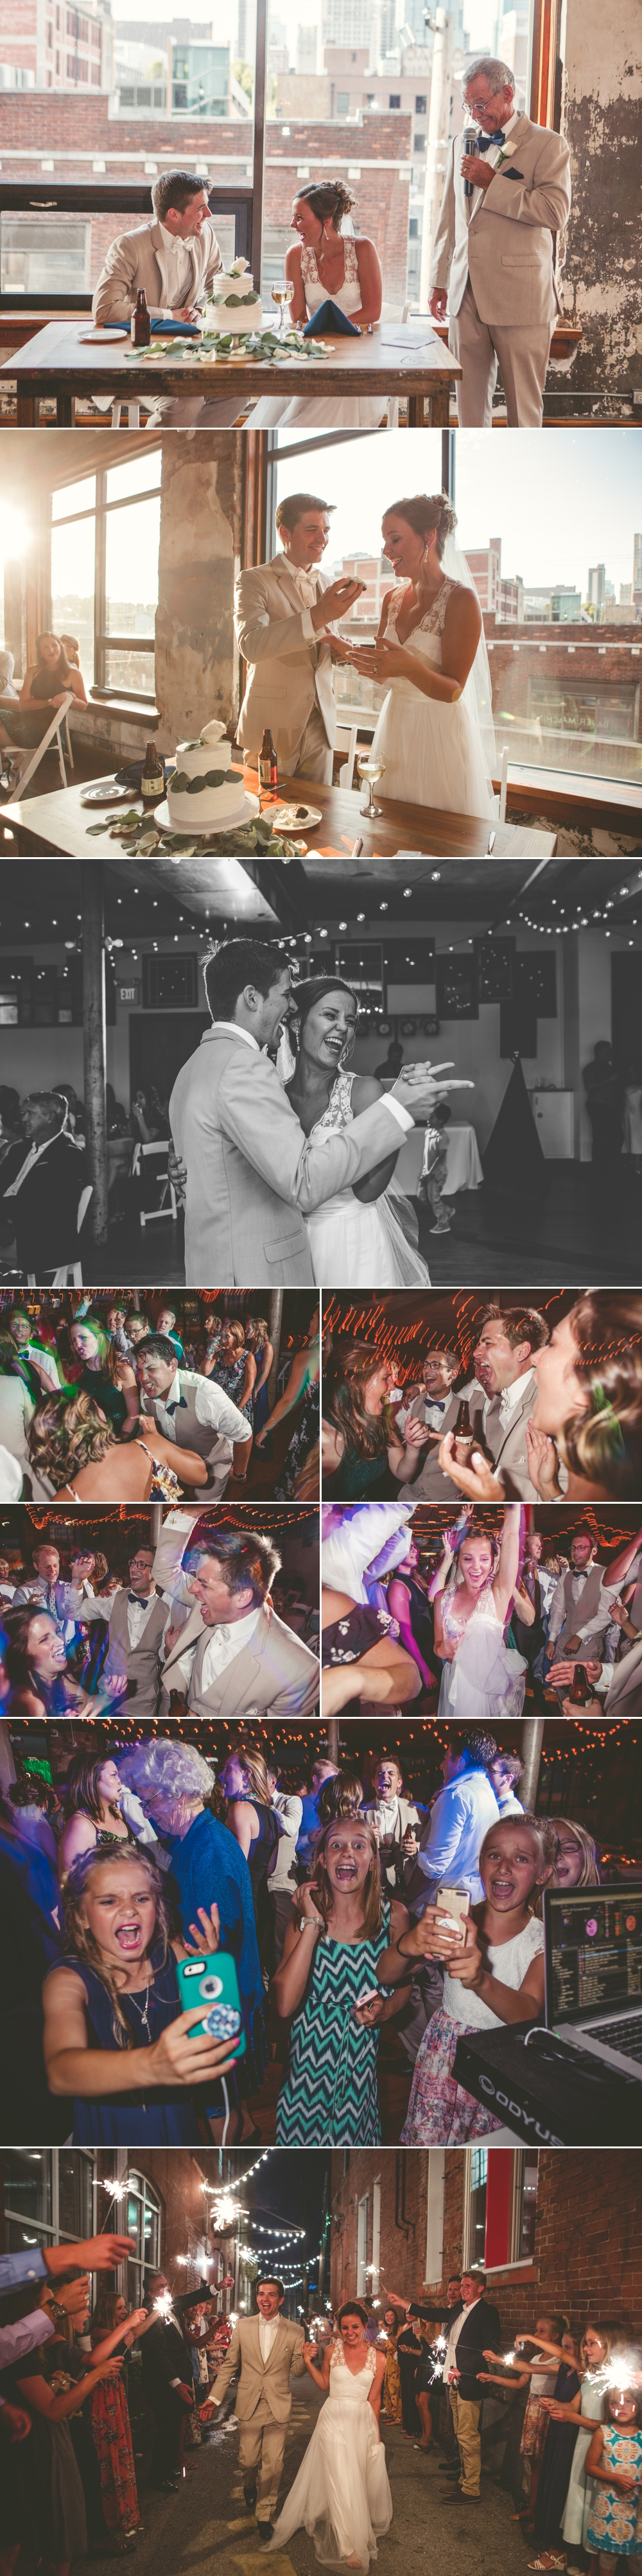 jason_domingues_photography_best_kansas_city_photographer_kc_weddings_bauer_0005.JPG